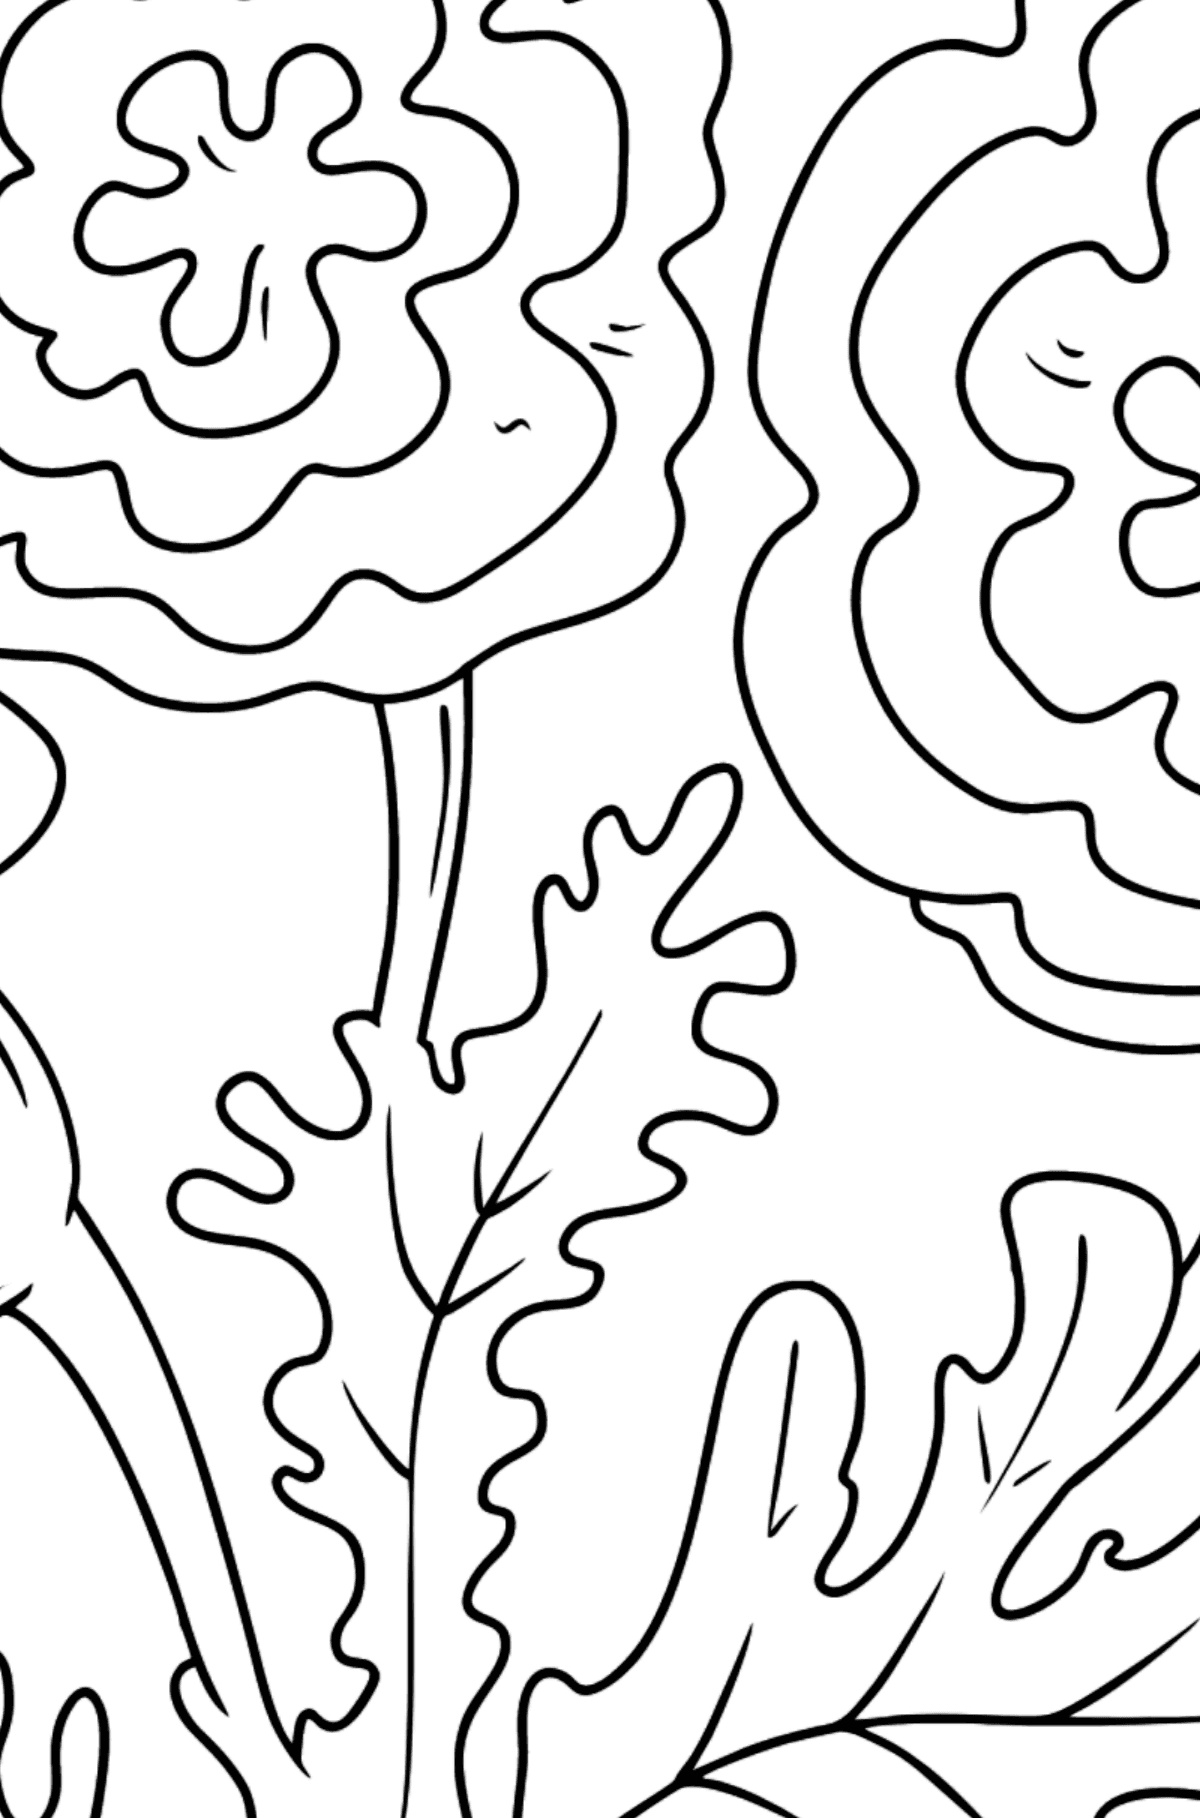 Coloring Page - Autumn flowers - Coloring by Symbols for Kids